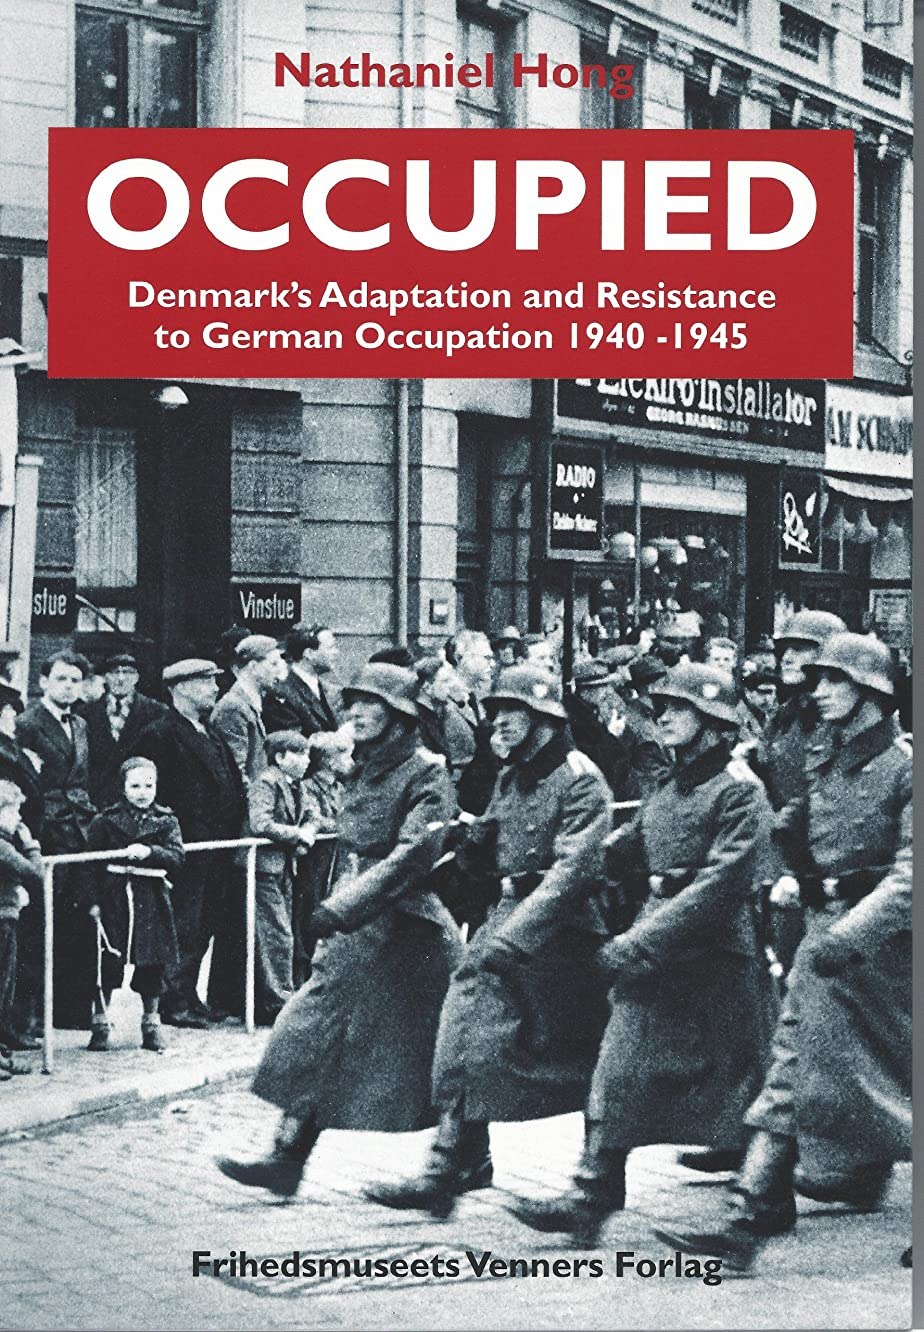 Occupied, Denmark's Adaptation and Resistance to German Occupation 1940-1945